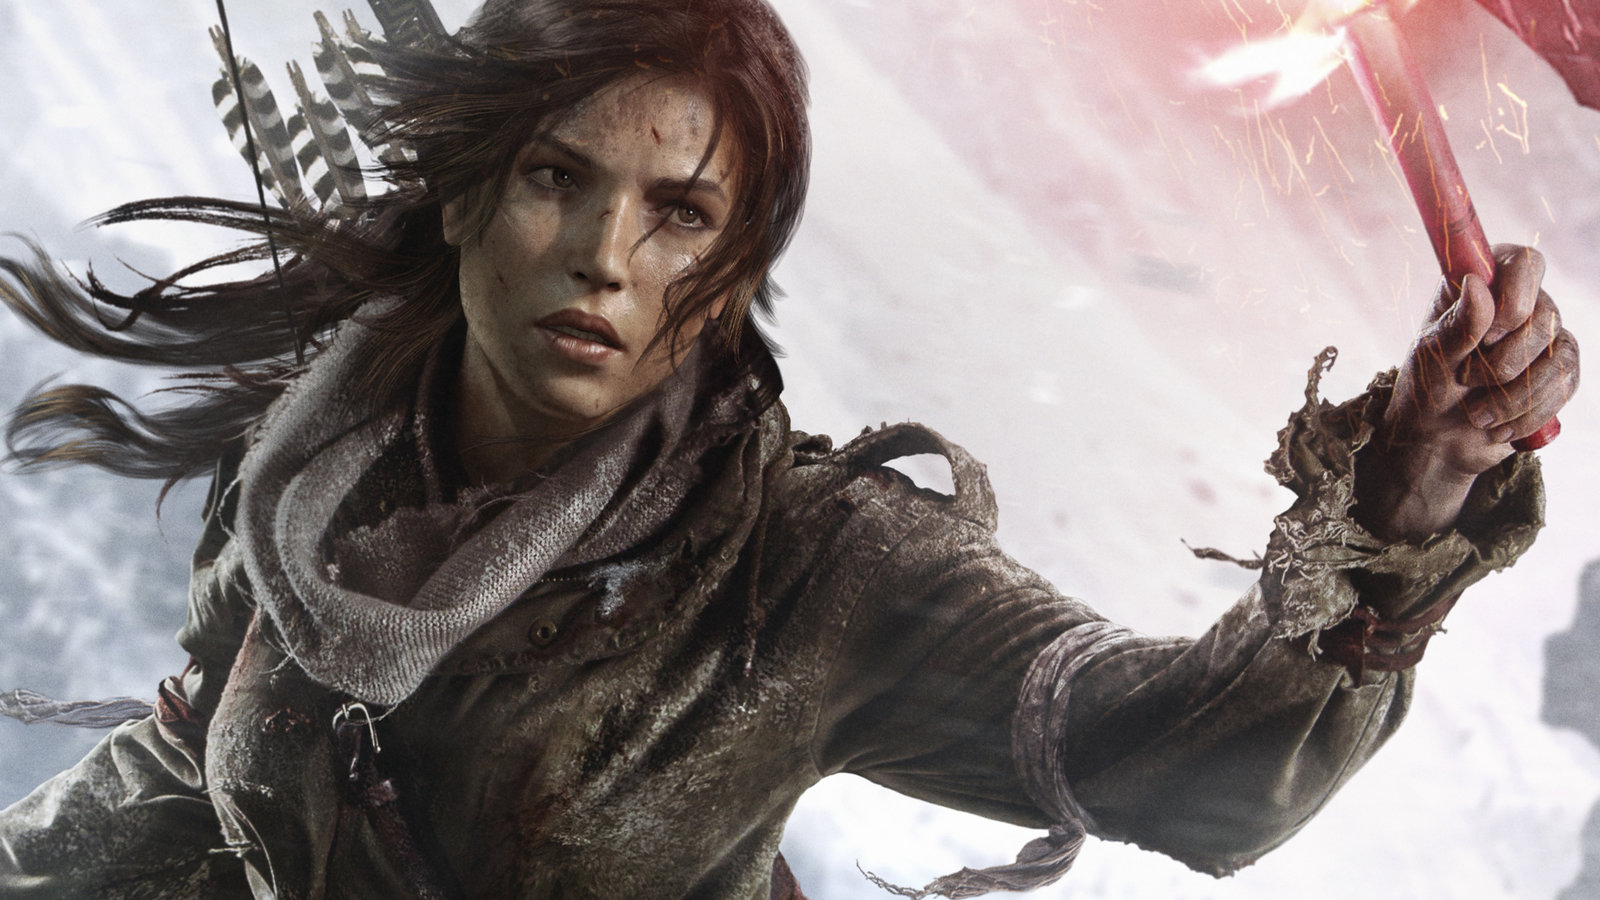 New Tomb Raider Game Coming in 2018 | GameWatcher